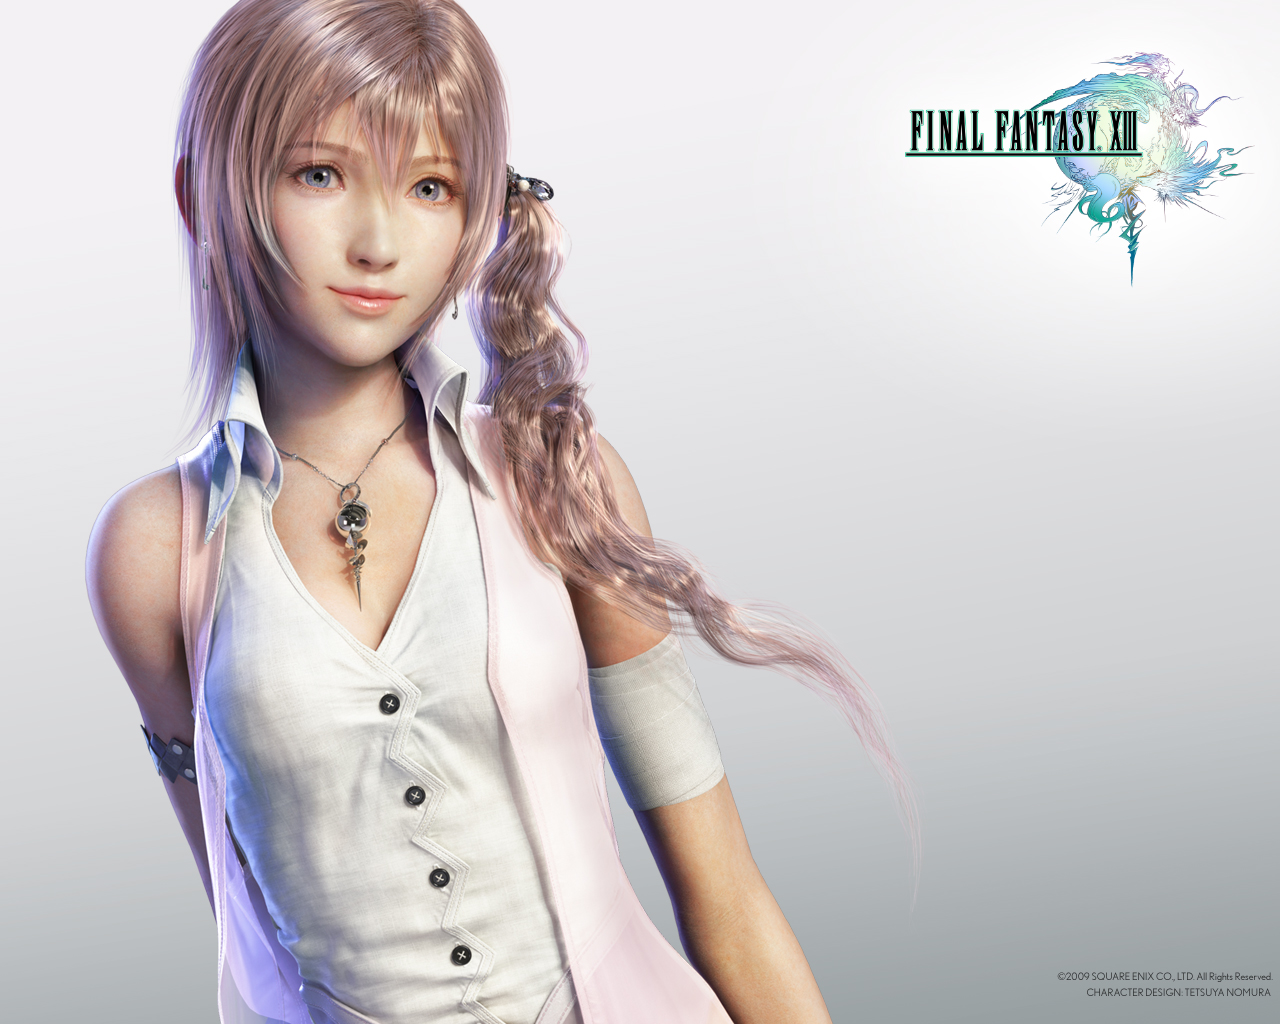 Final Fantasy XIII Wallpapers   Final Fantasy FXN Network 1280x1024